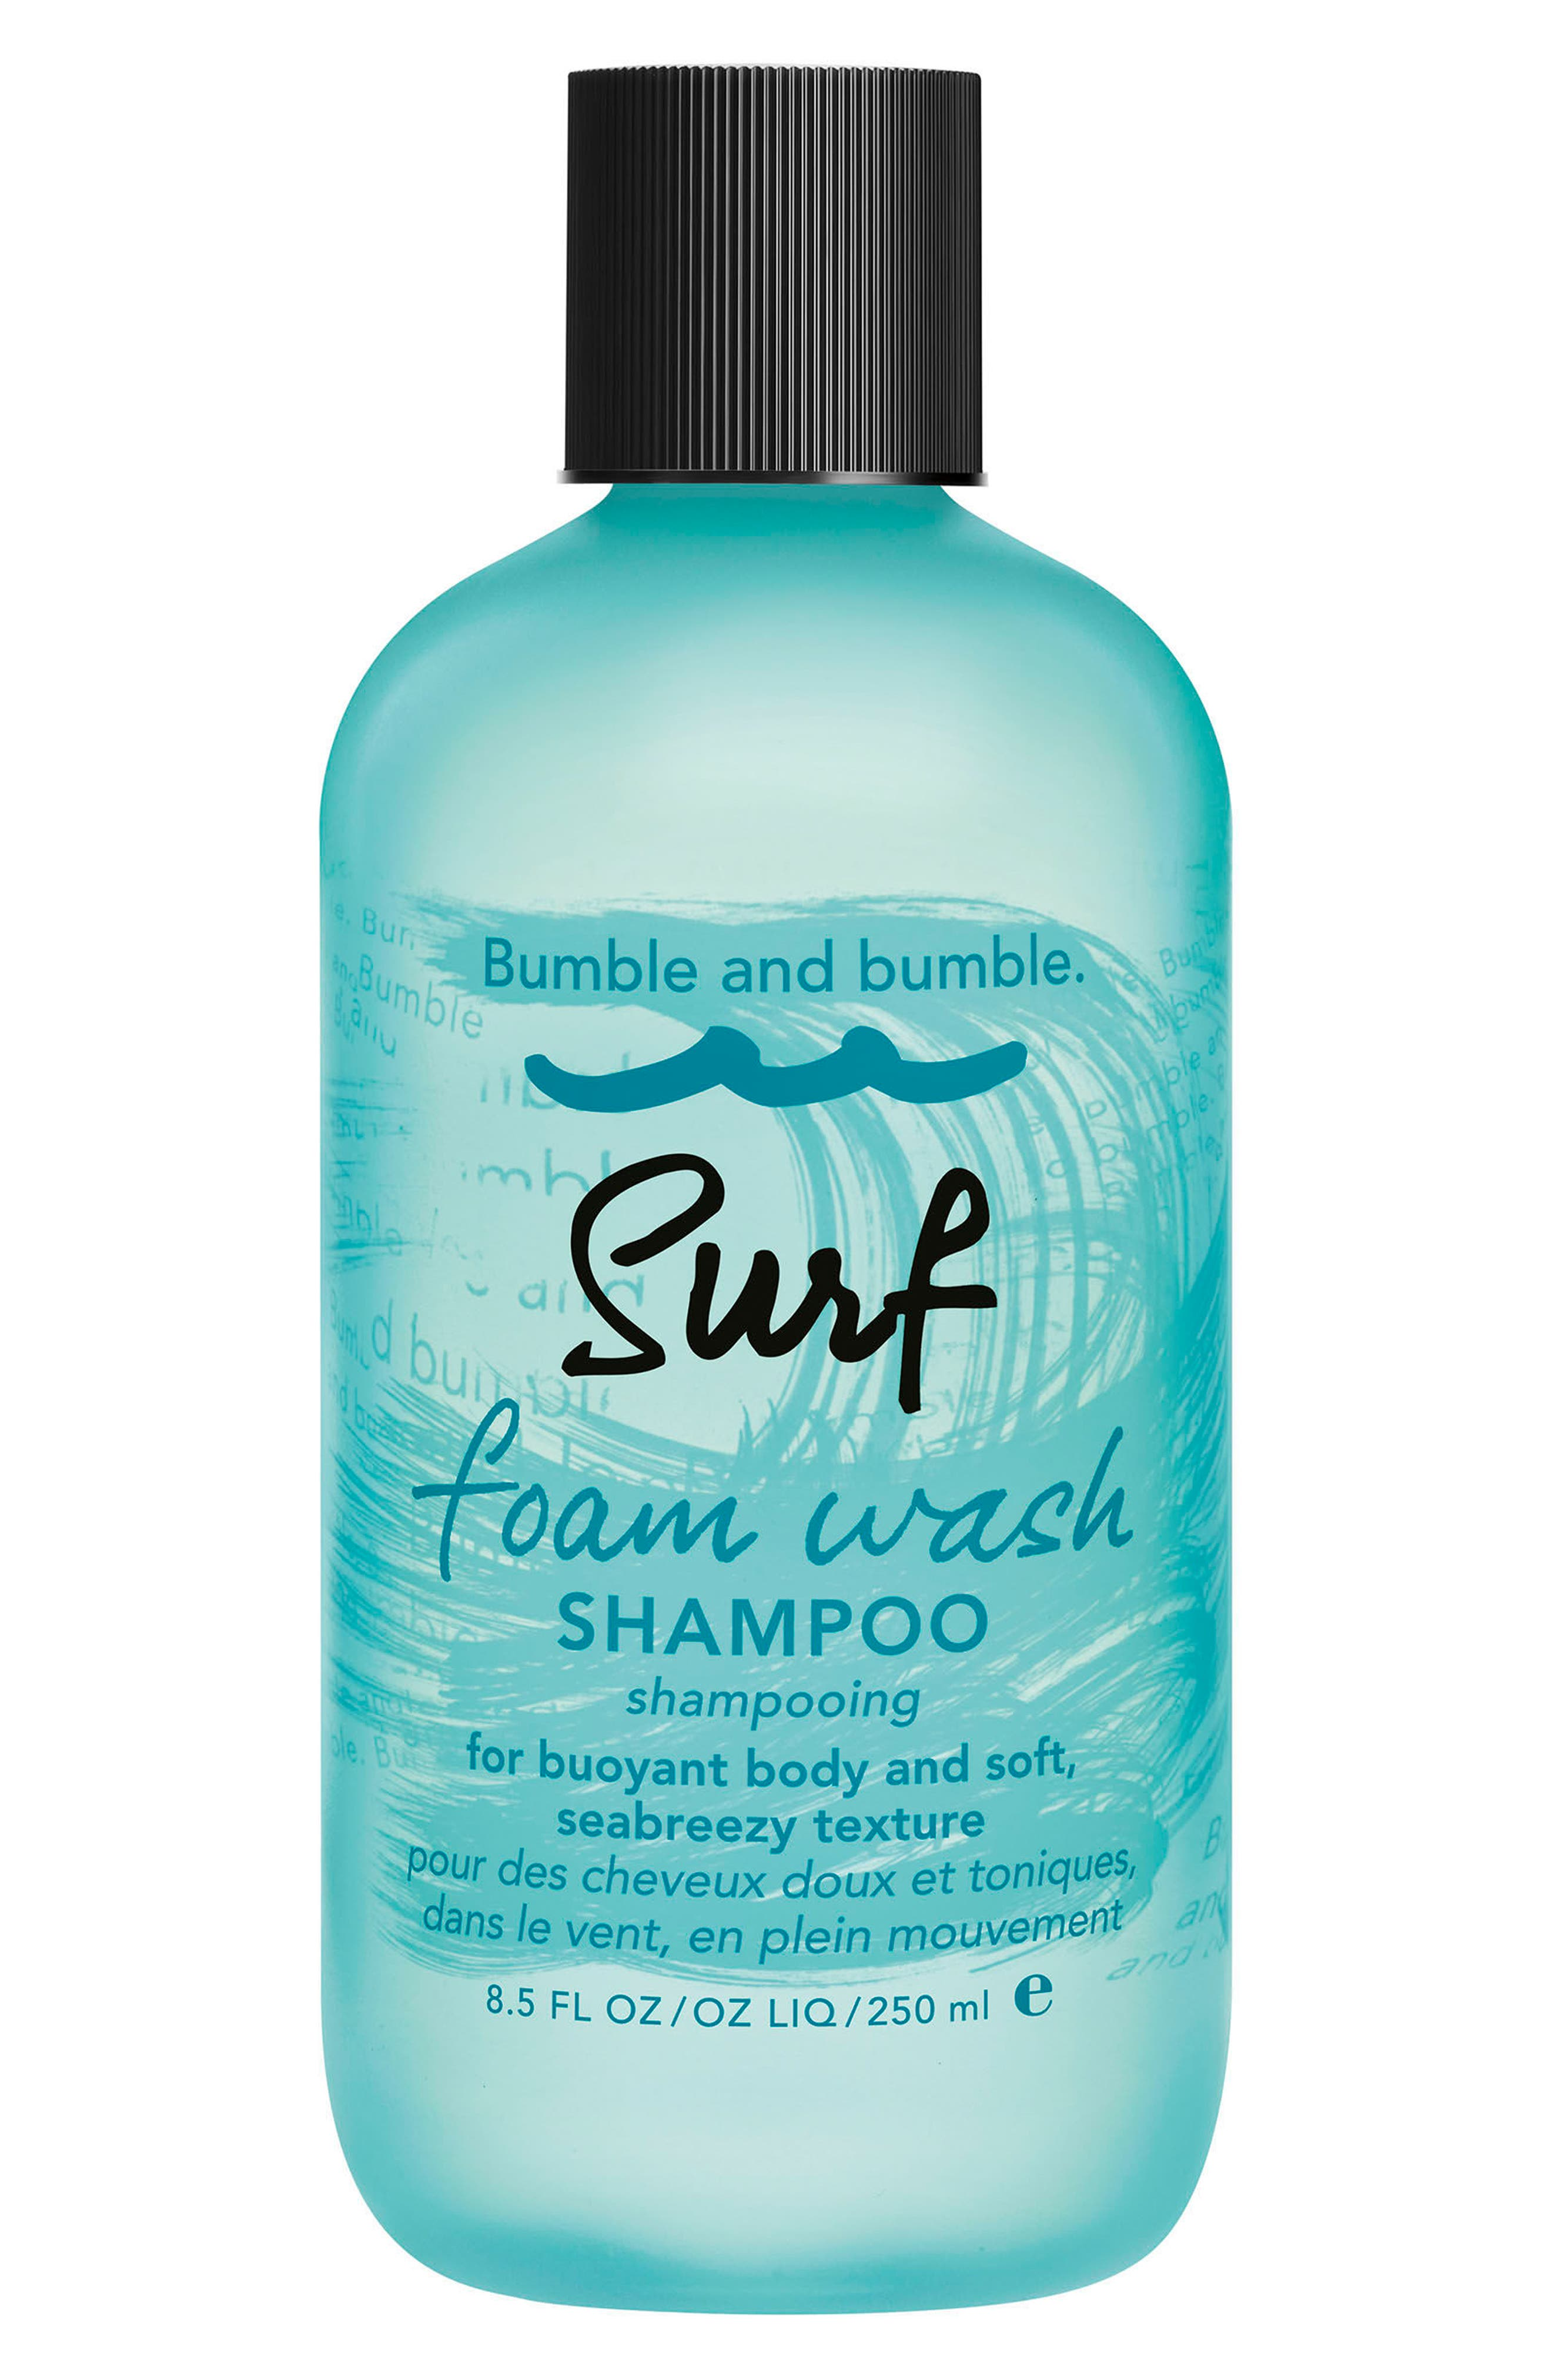 Alternate Image 1 Selected - Bumble and bumble Surf Foam Wash Shampoo